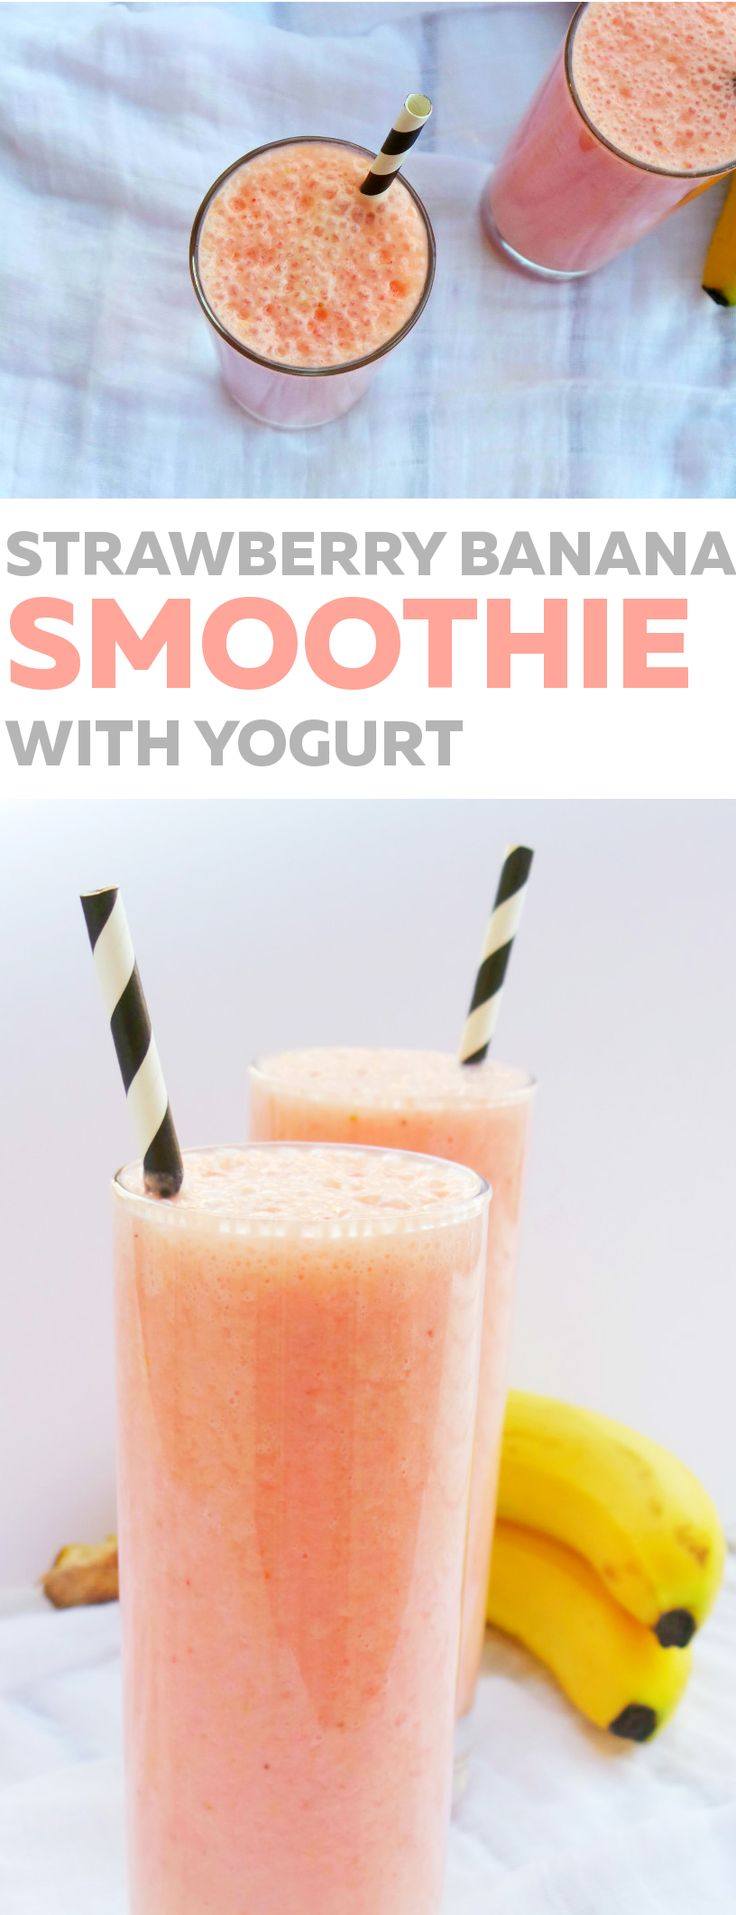 Healthy breakfast smoothie: Strawberry, banana and yogurt smoothie that is perfect as a start of your day. Delicious and satisfying, good for your skin and your gut health